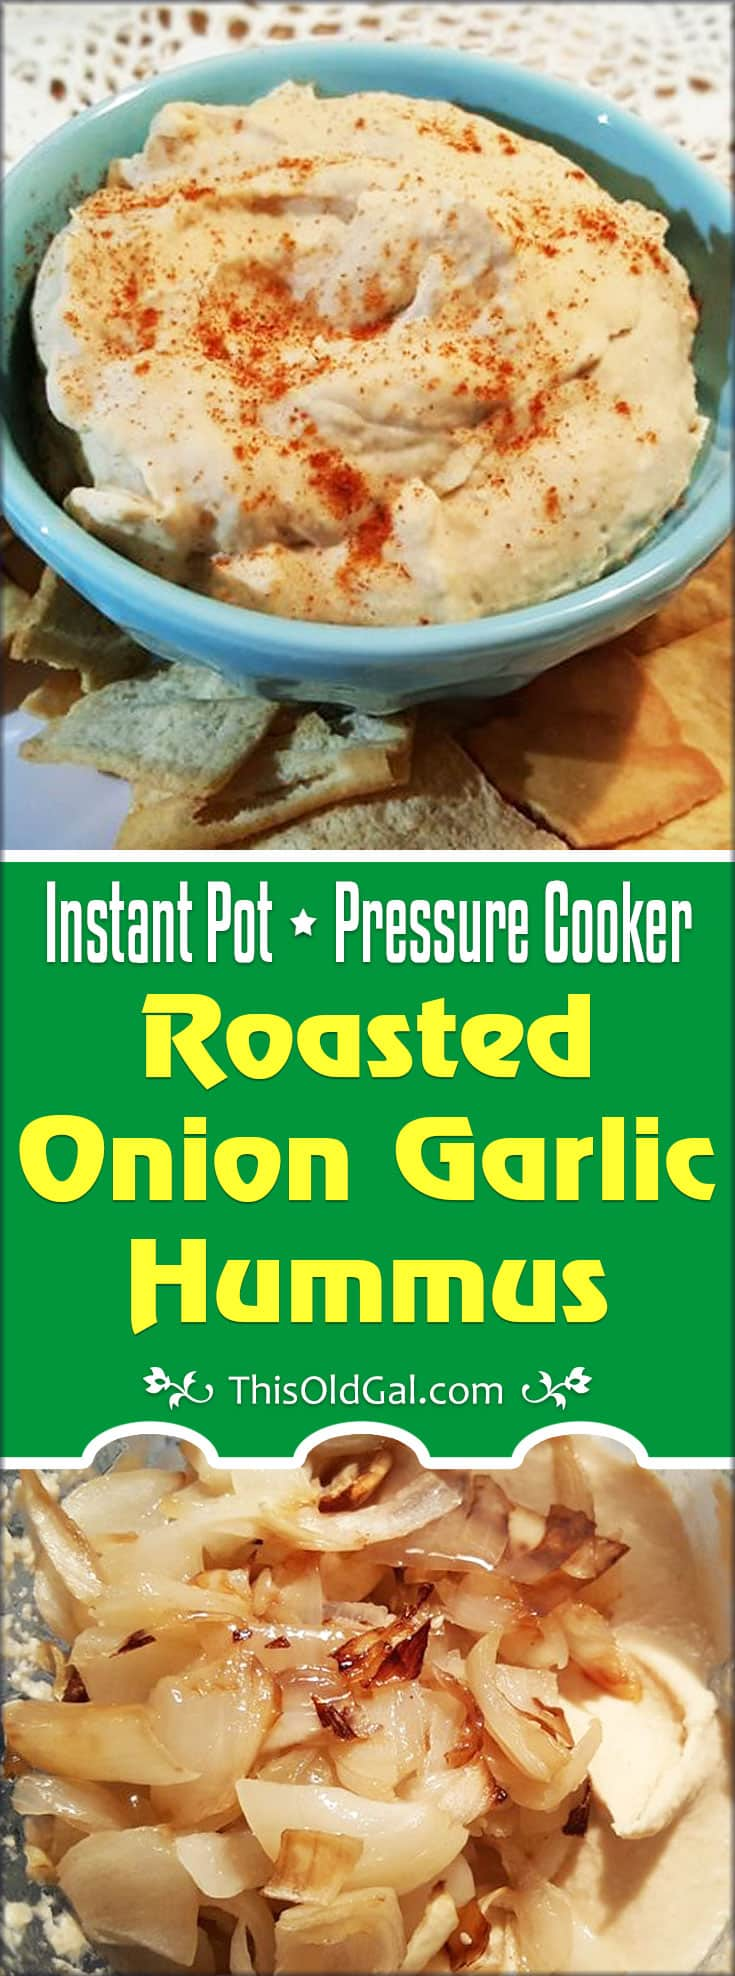 Pressure Cooker Roasted Onion Garlic Hummus